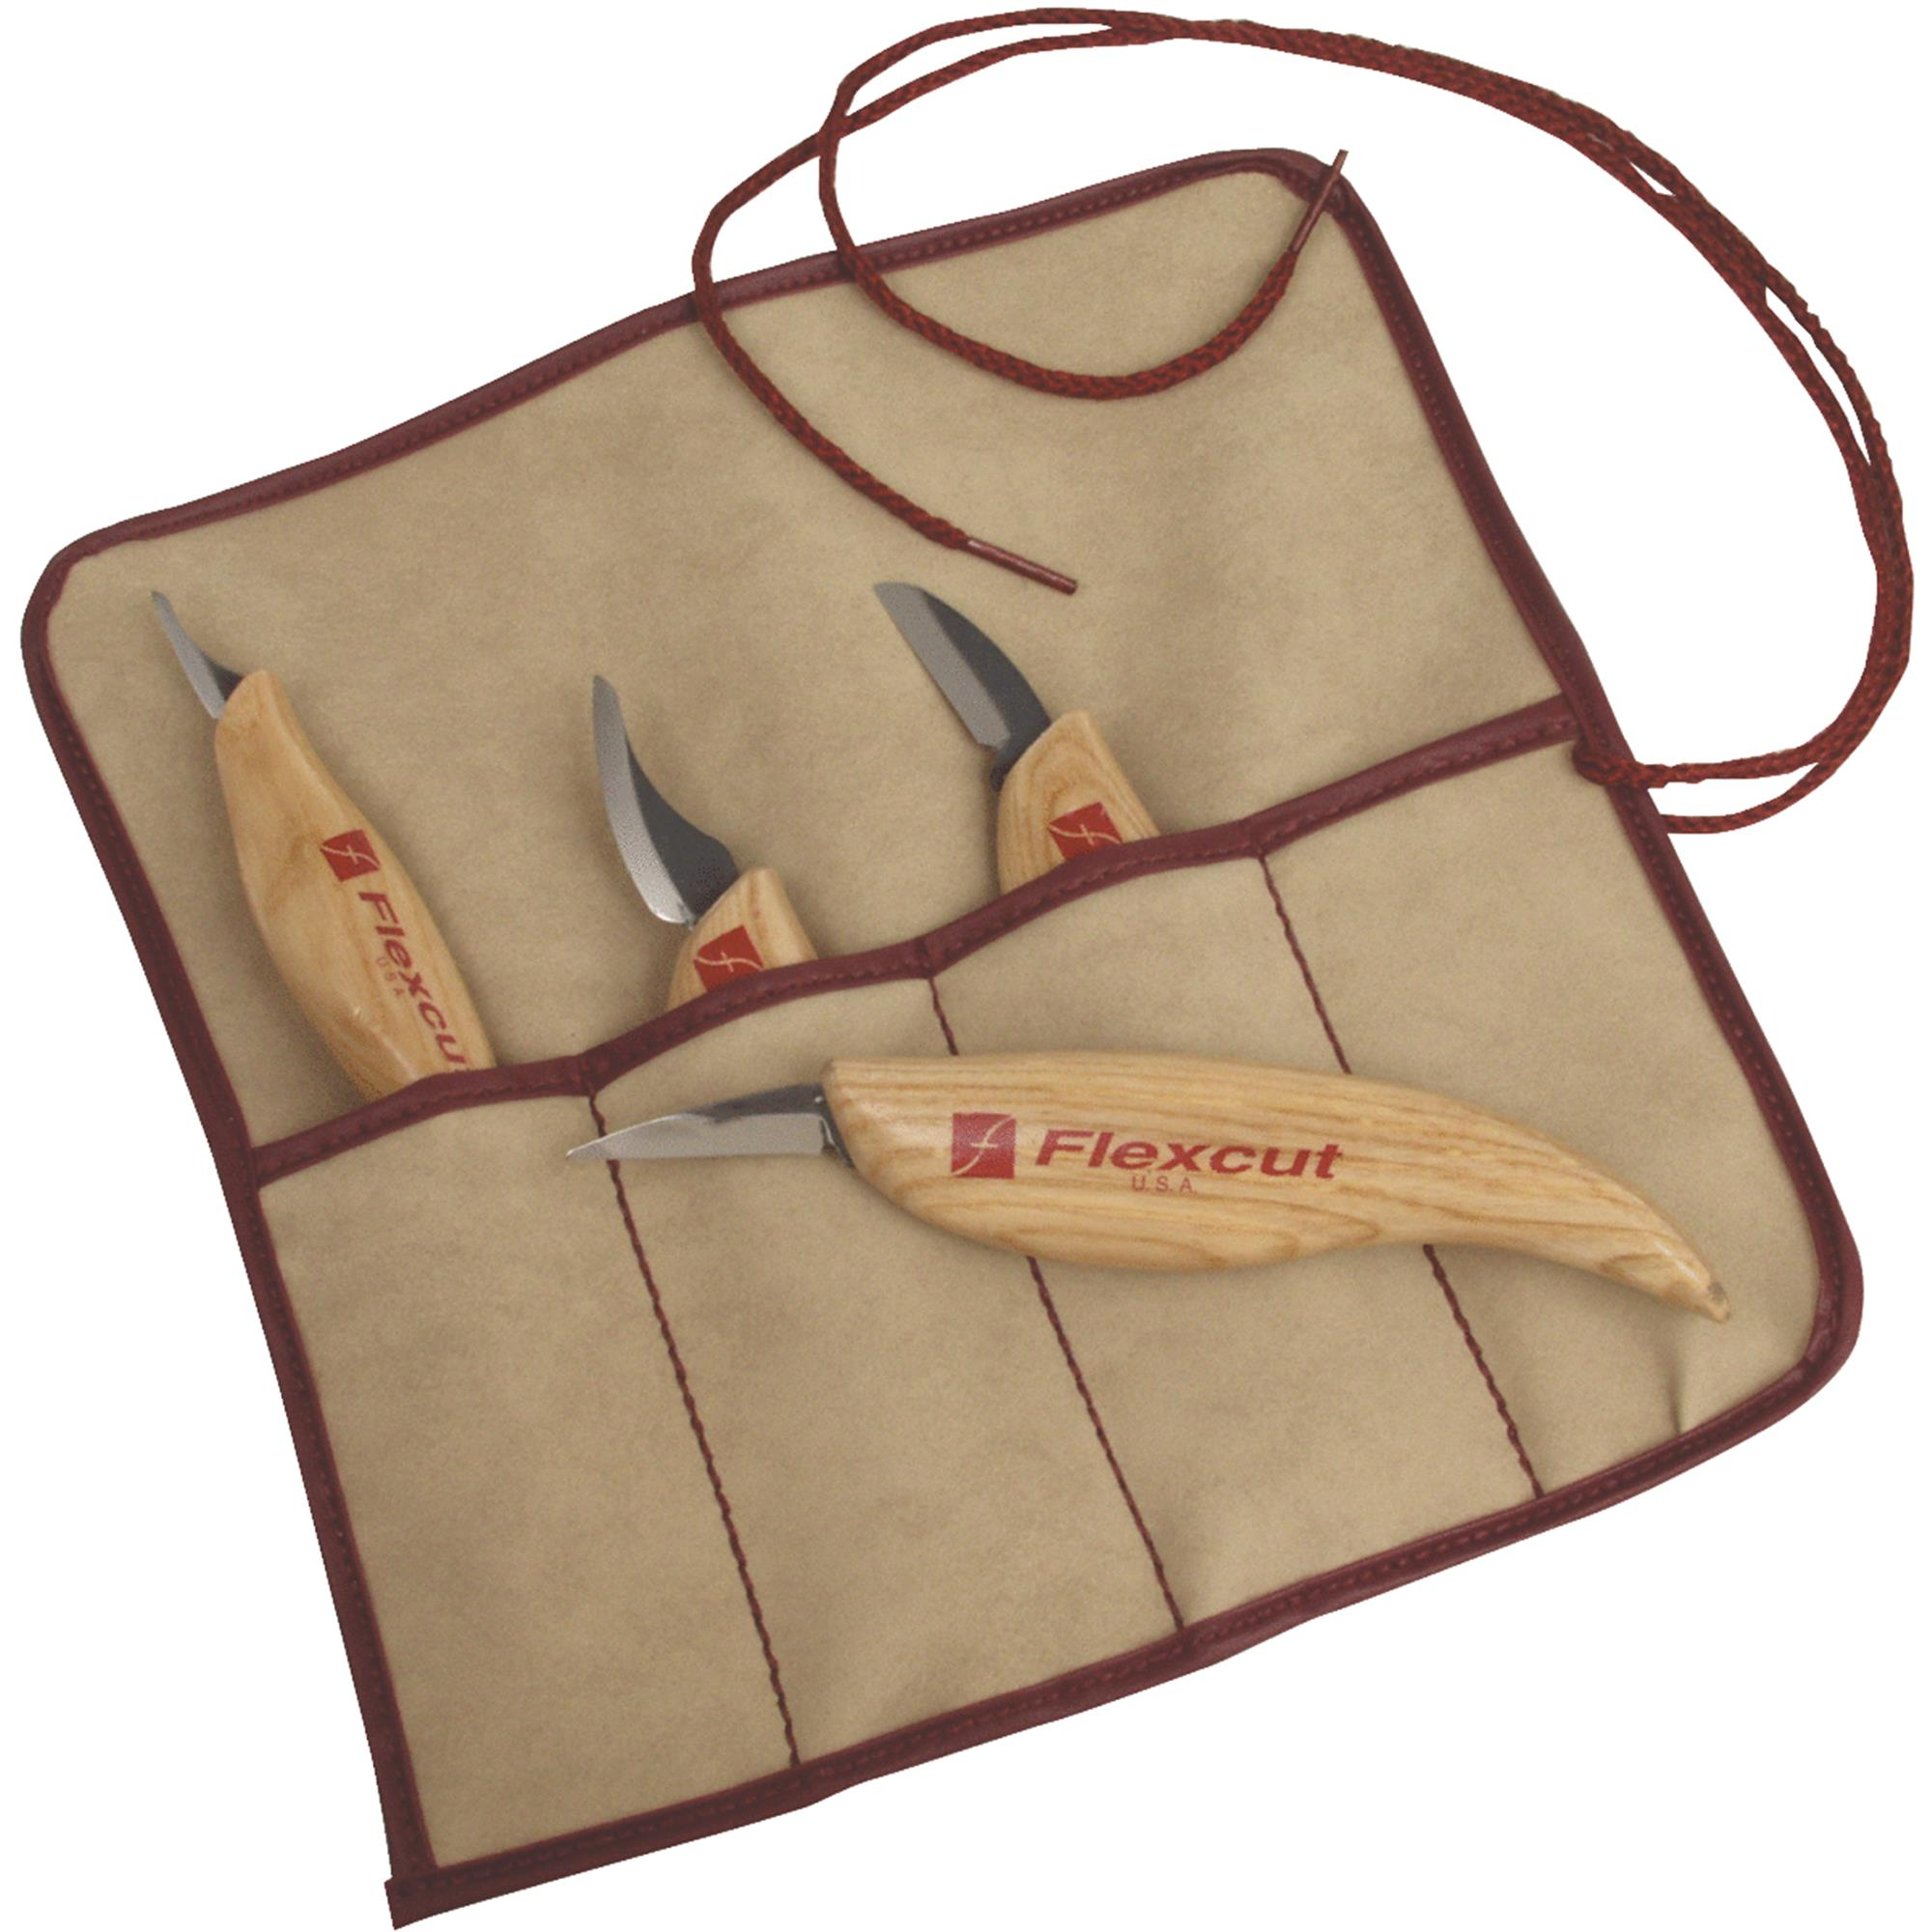 4-Piece Wood Carving Knife Set by Flexcut Tool